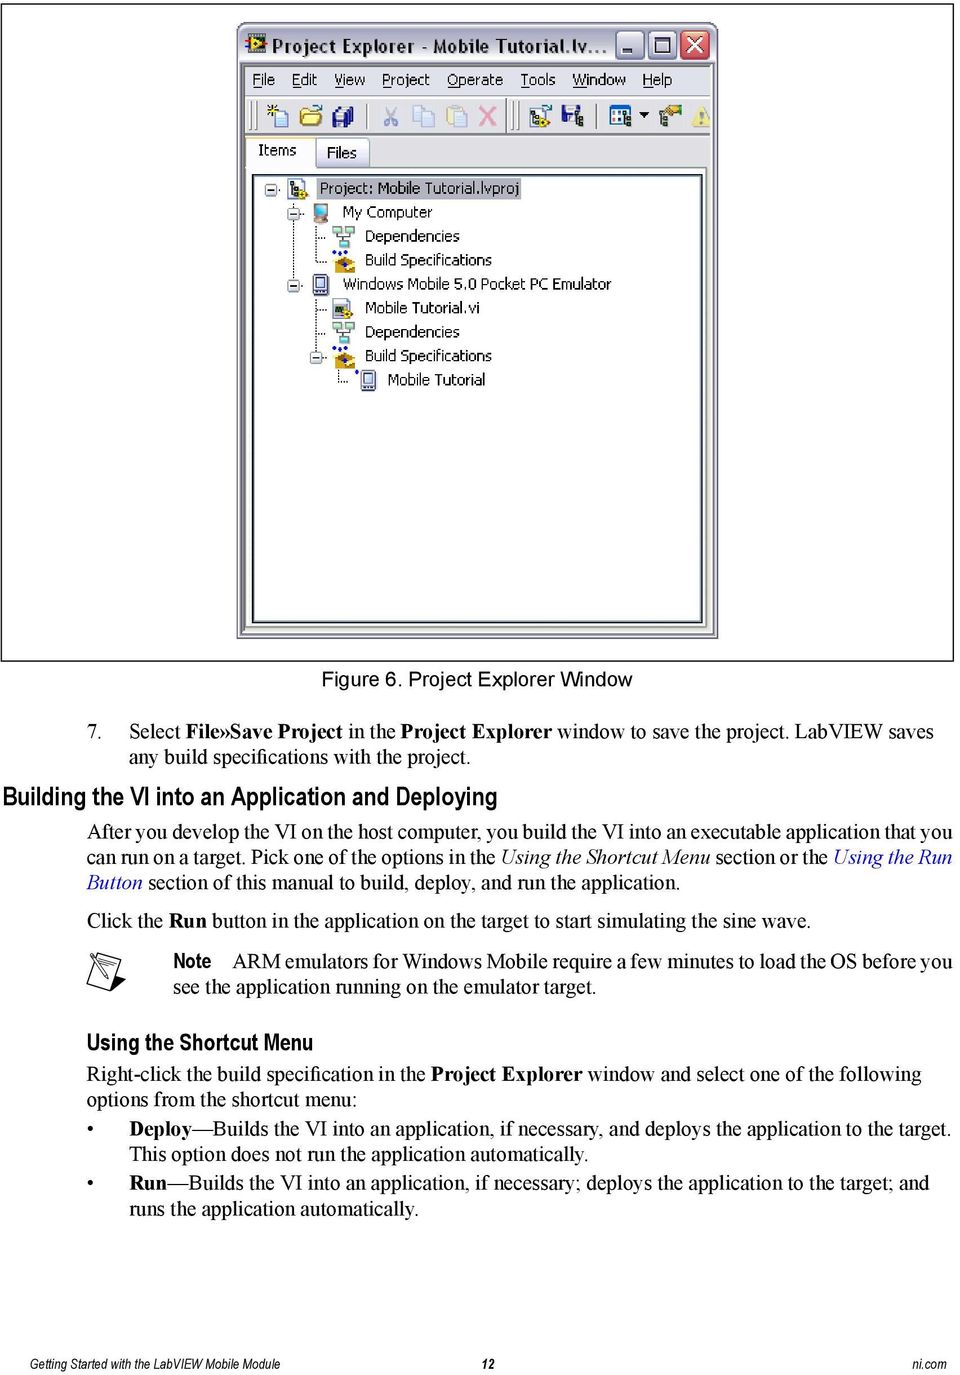 Pick one of the options in the Using the Shortcut Menu section or the Using the Run Button section of this manual to build, deploy, and run the application.